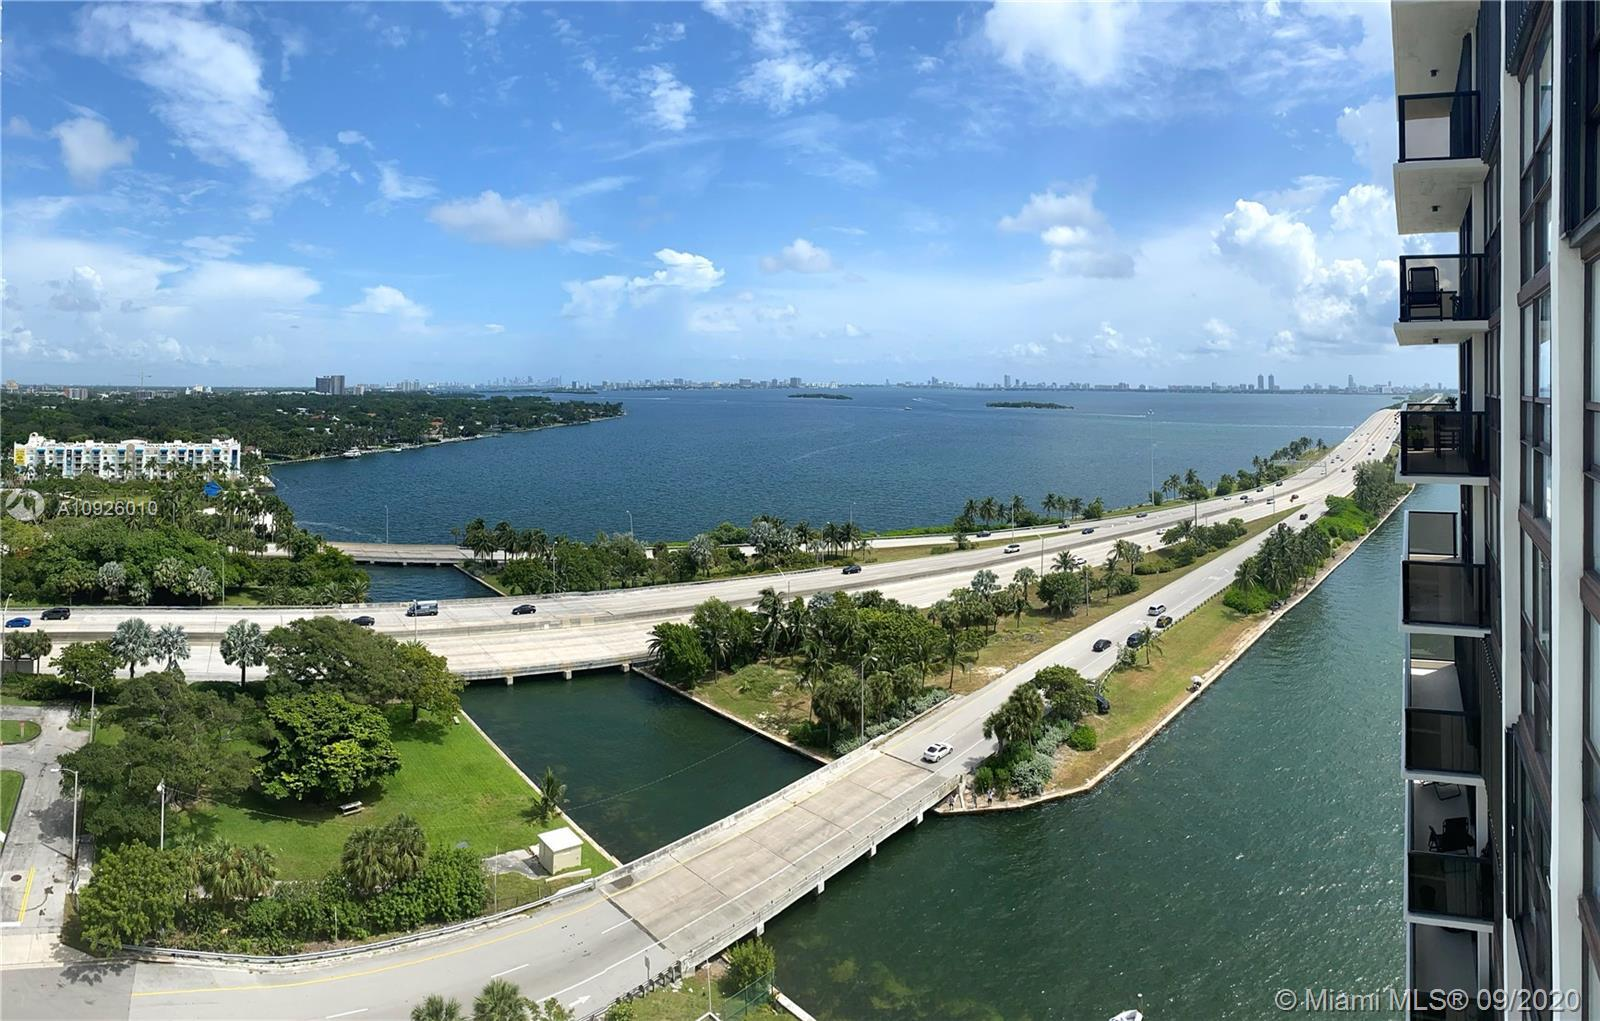 AMAZING WATERFRONT UNIT FOR SALE IN THE 18TH FLOOR OF THE CHARTER CLUB. TRAVERTINE FLOORING THROUGHO